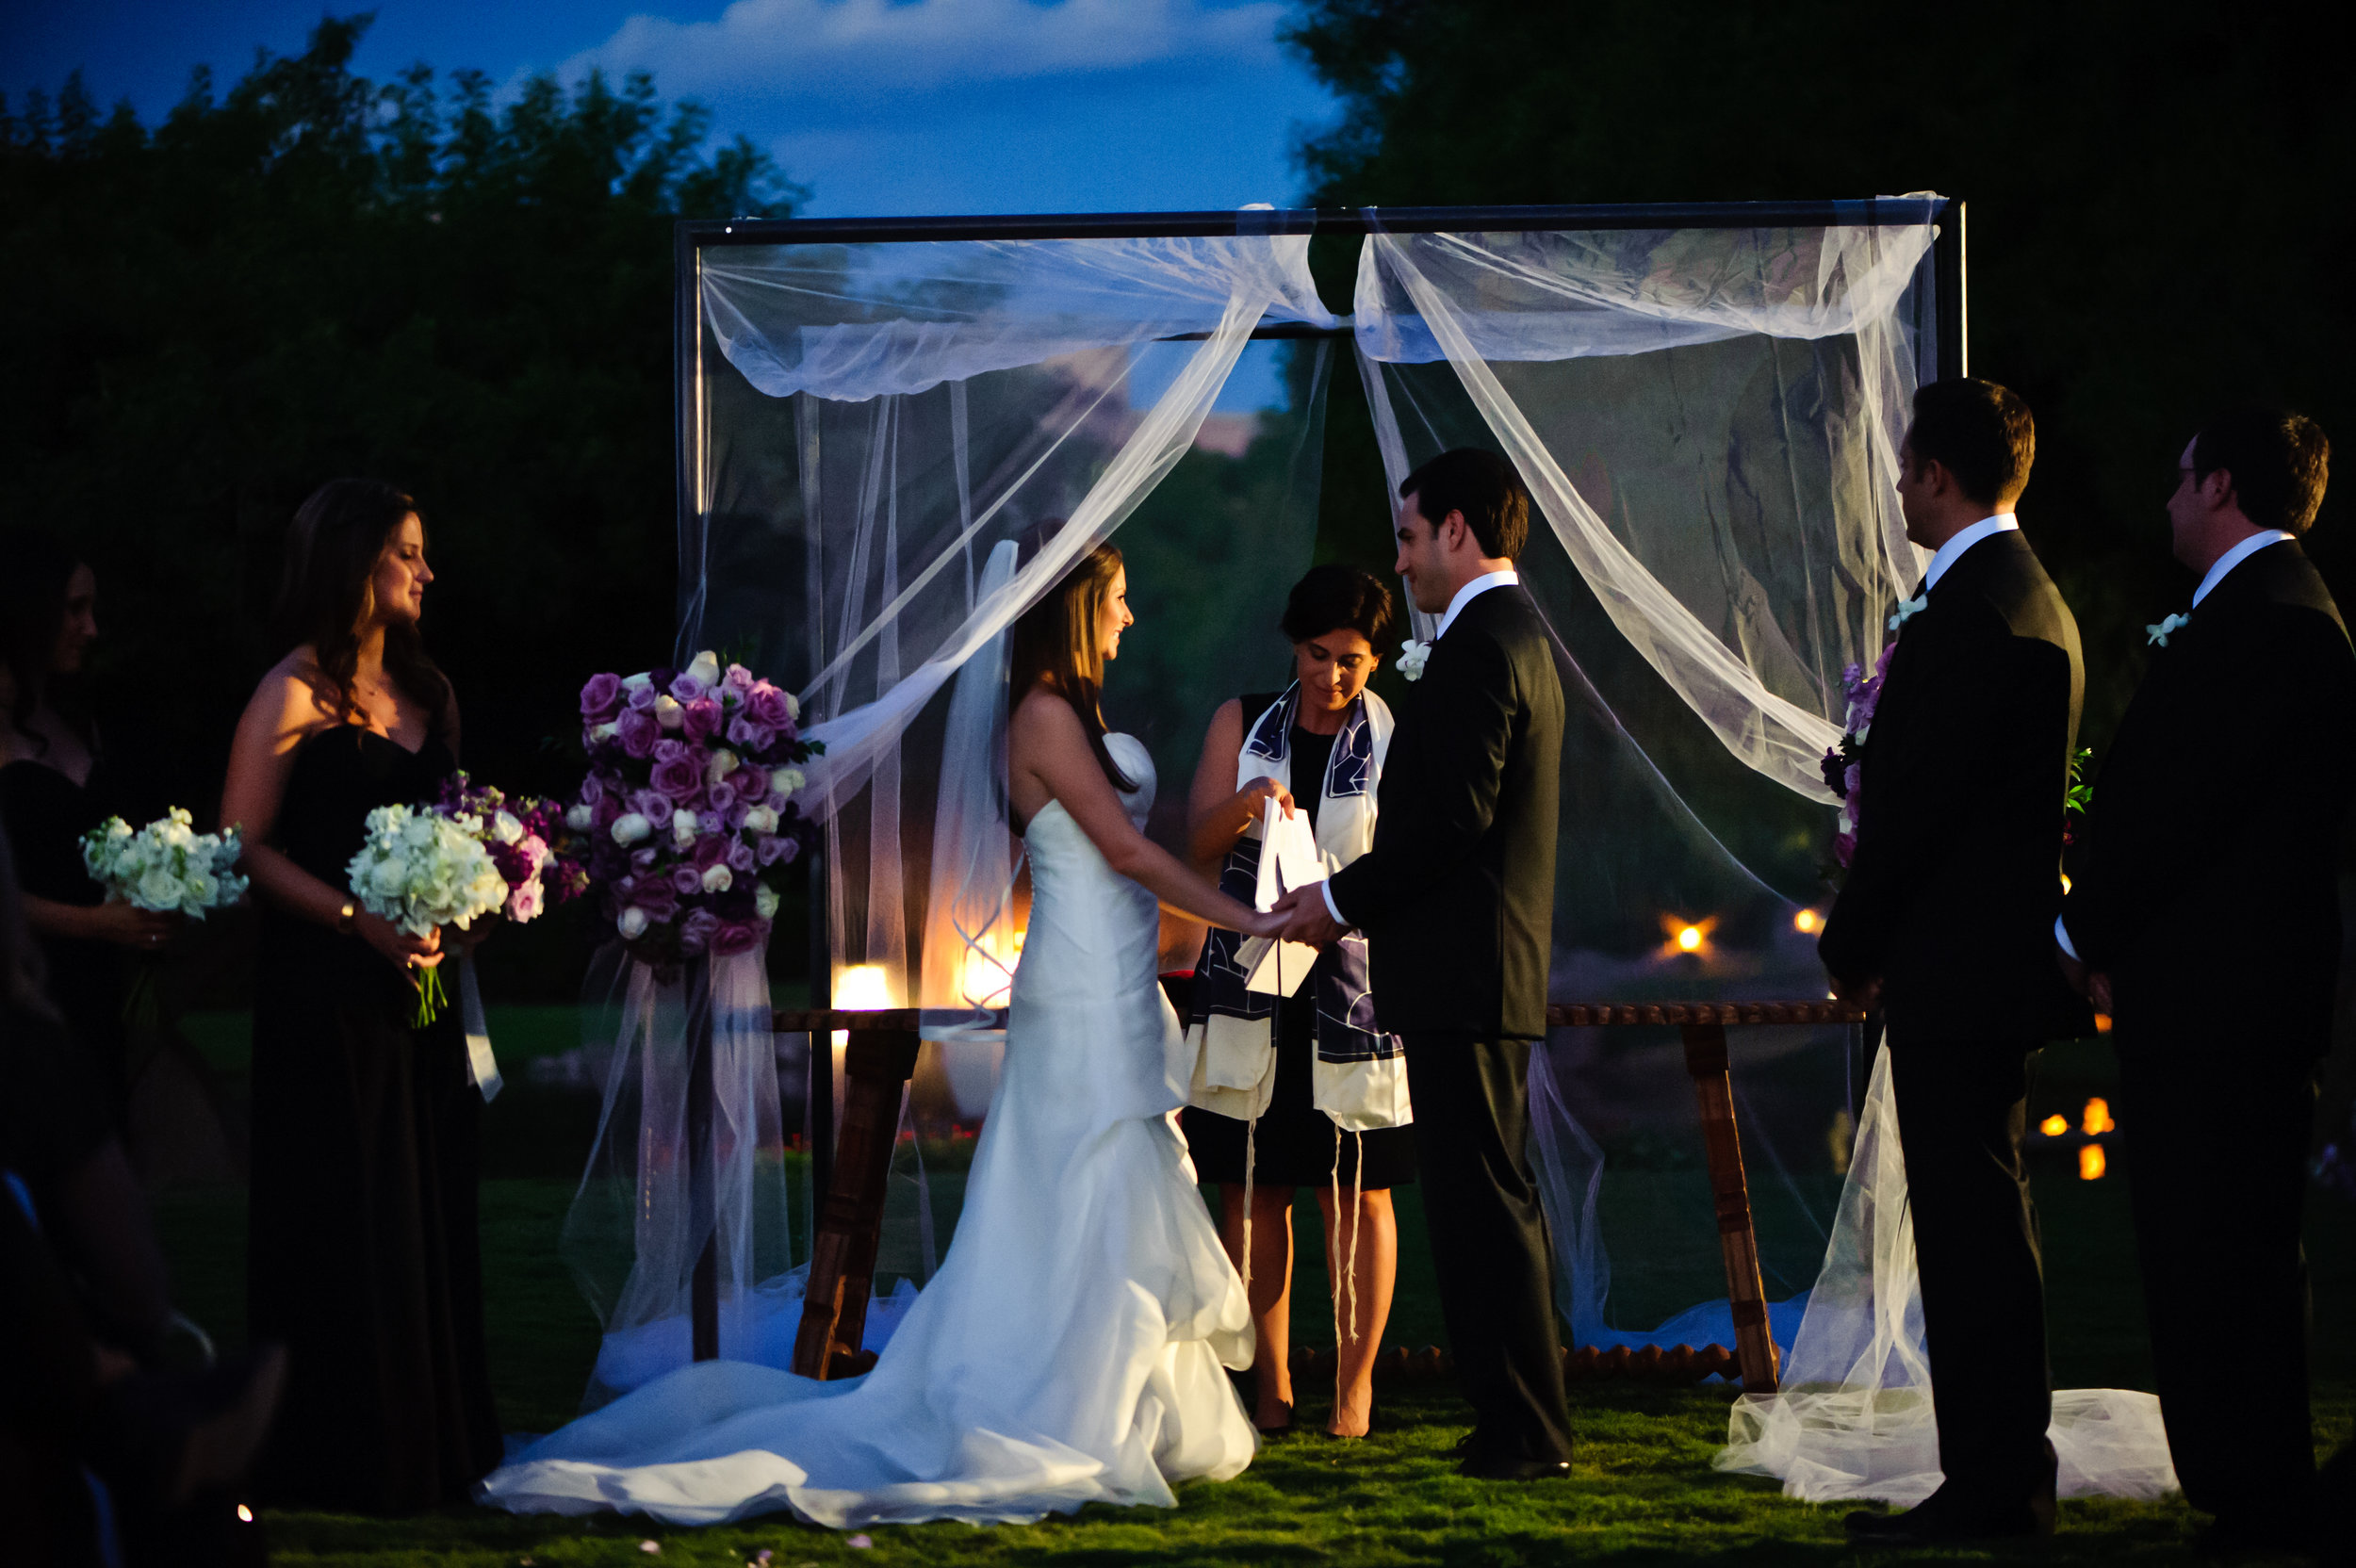 20 bride and groom at the alter evening wedding ceremony bride and groom exchanging vows Sergio Photography Life Design Events.JPG